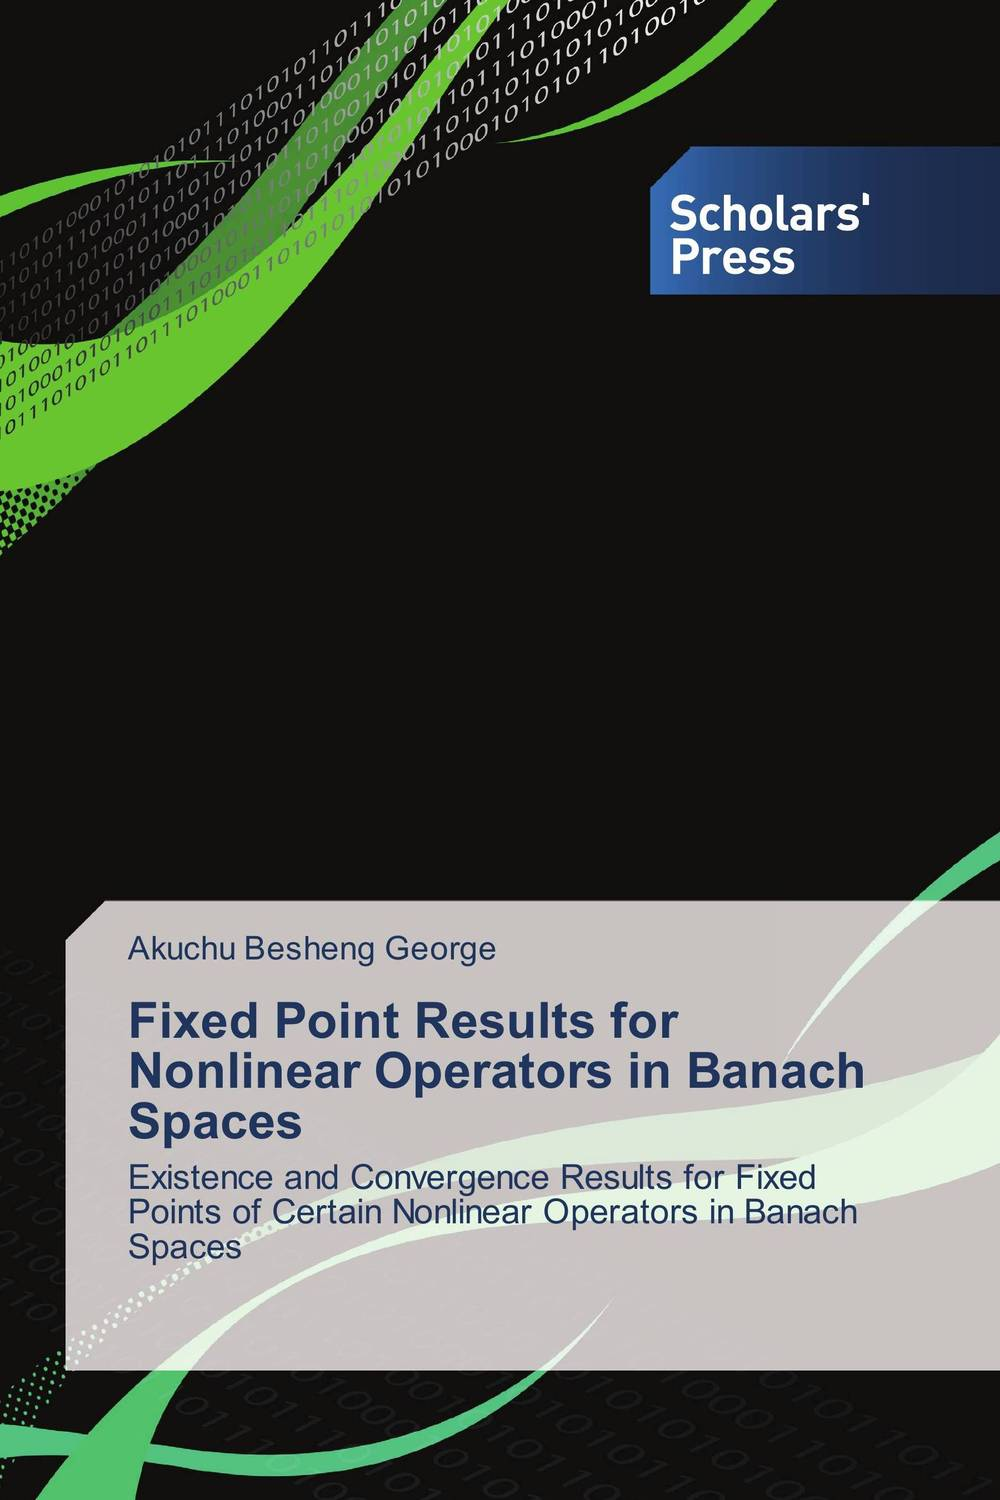 Fixed Point Results for Nonlinear Operators in Banach Spaces